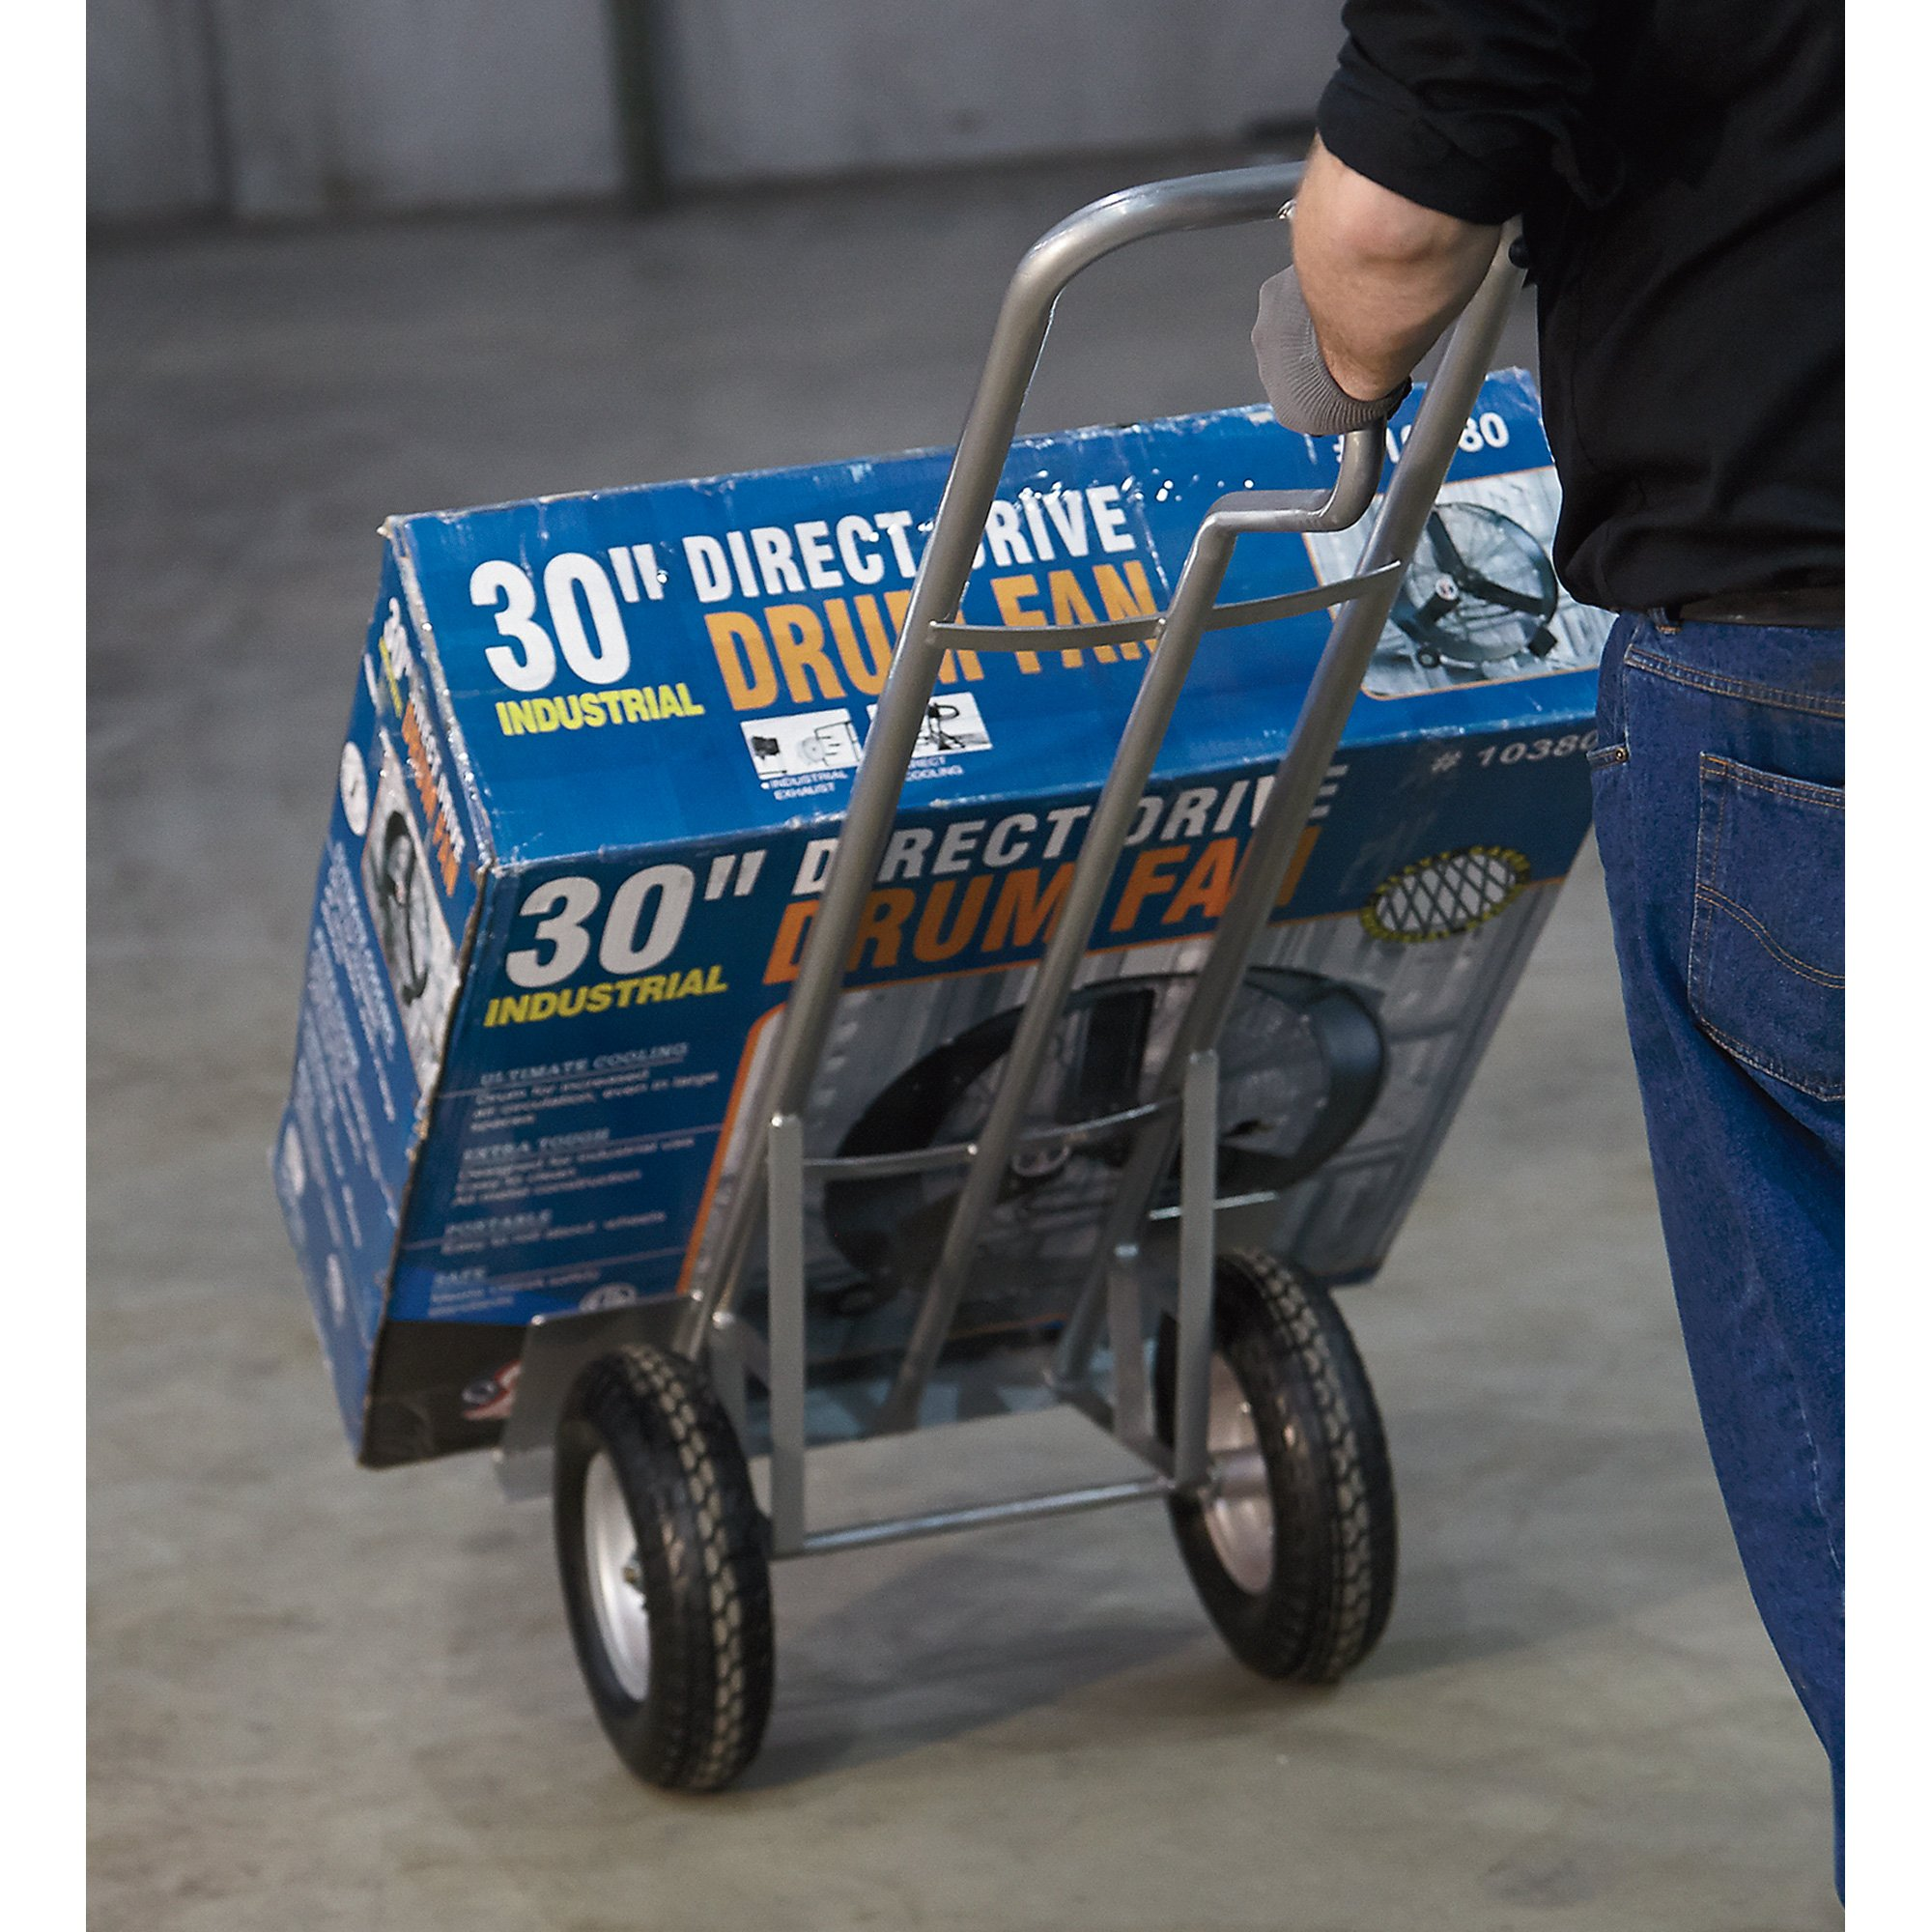 Roughneck Hand Truck - 1,000-Lb. Capacity, P-Handle, Oversized Toe Plate